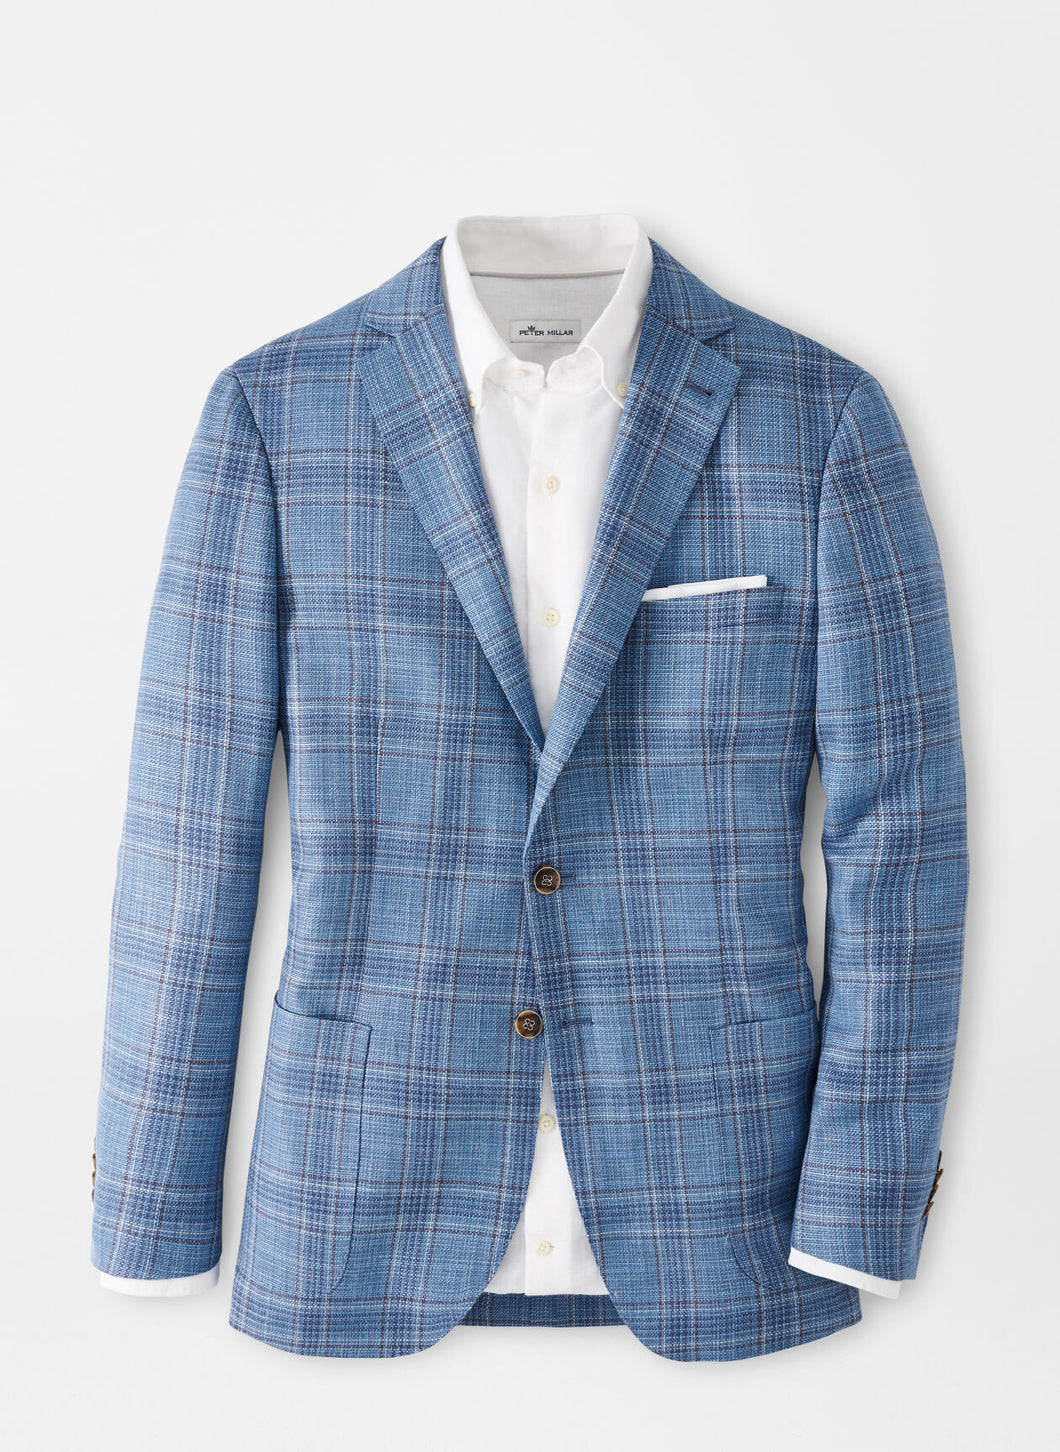 Peter Millar Riverside Plaid Soft Jacket in Blue Sea